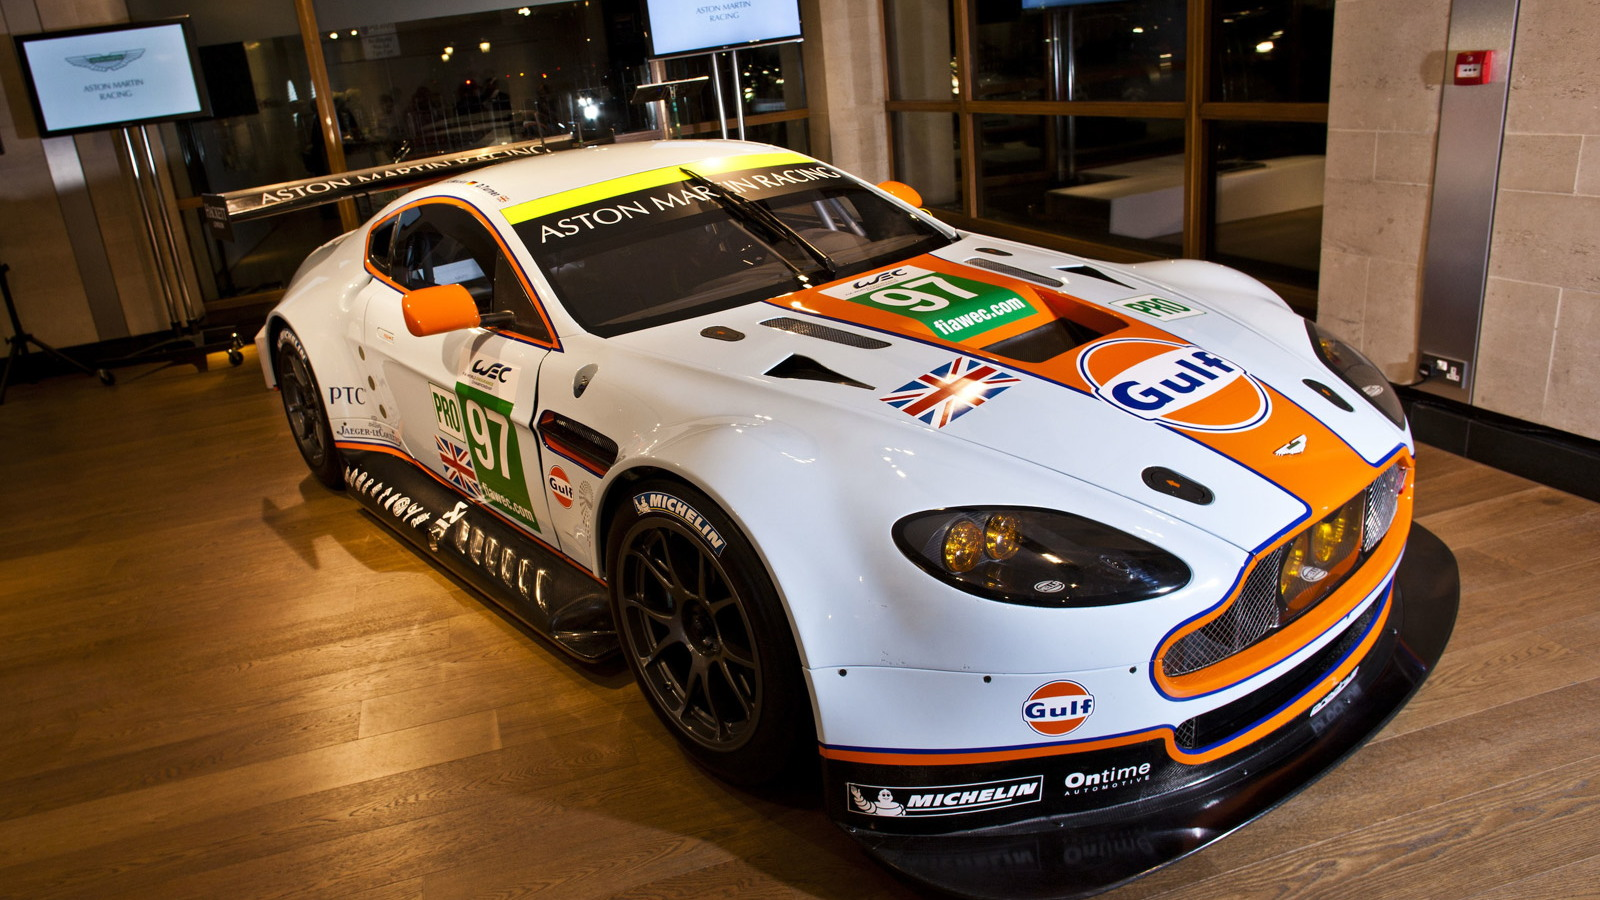 2013 Aston Martin Vantage GTE race car launch